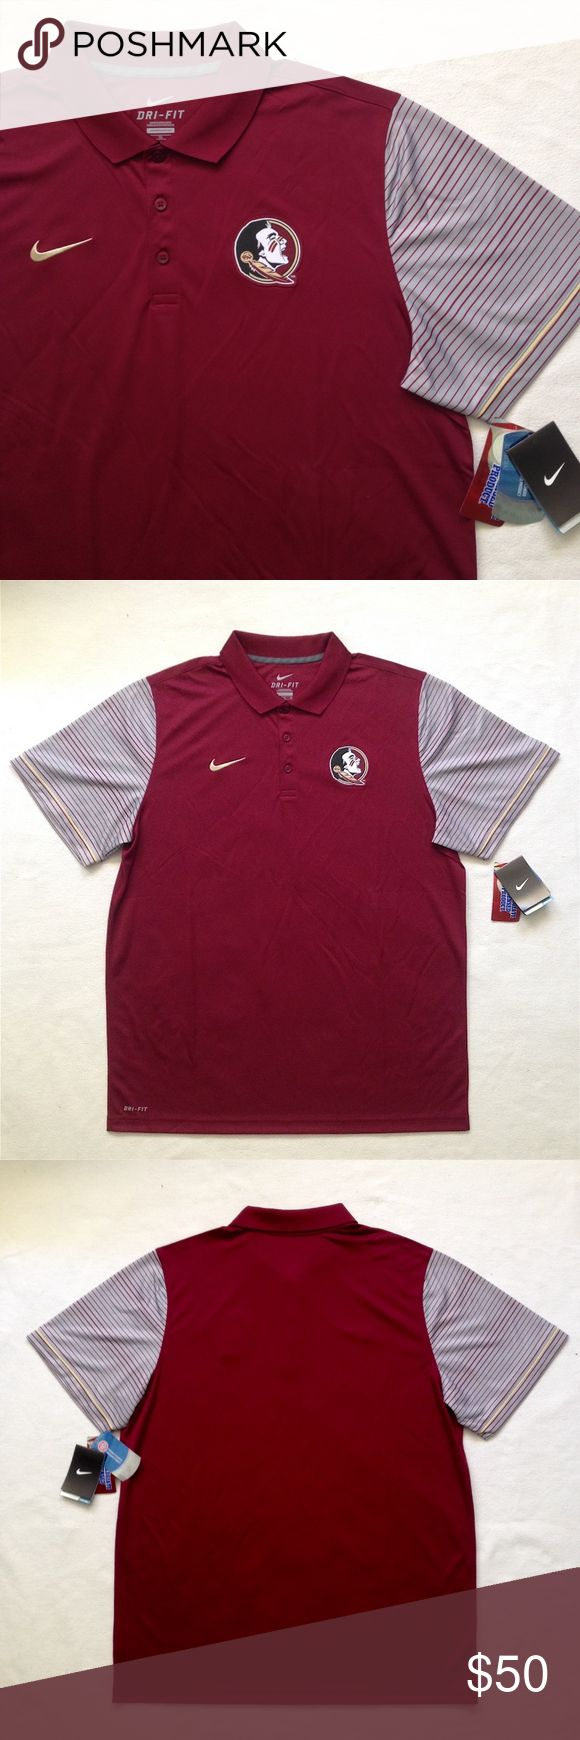 """FLORIDA STATE SEMINOLES - Nike Men's Polo Shirt The Nike College Dri-FIT Florida State Seminoles Men's Polo features school details and sweat-wicking fabric in a comfortable, timeless design.  Dri-FIT Technology helps keep you dry and comfortable Three-button placket for custom coverage Team logo graphic at the left chest & school color stripes at sleeves Pit to pit: 25"""" 100% Polyester  New with Tag Nike Shirts Polos"""